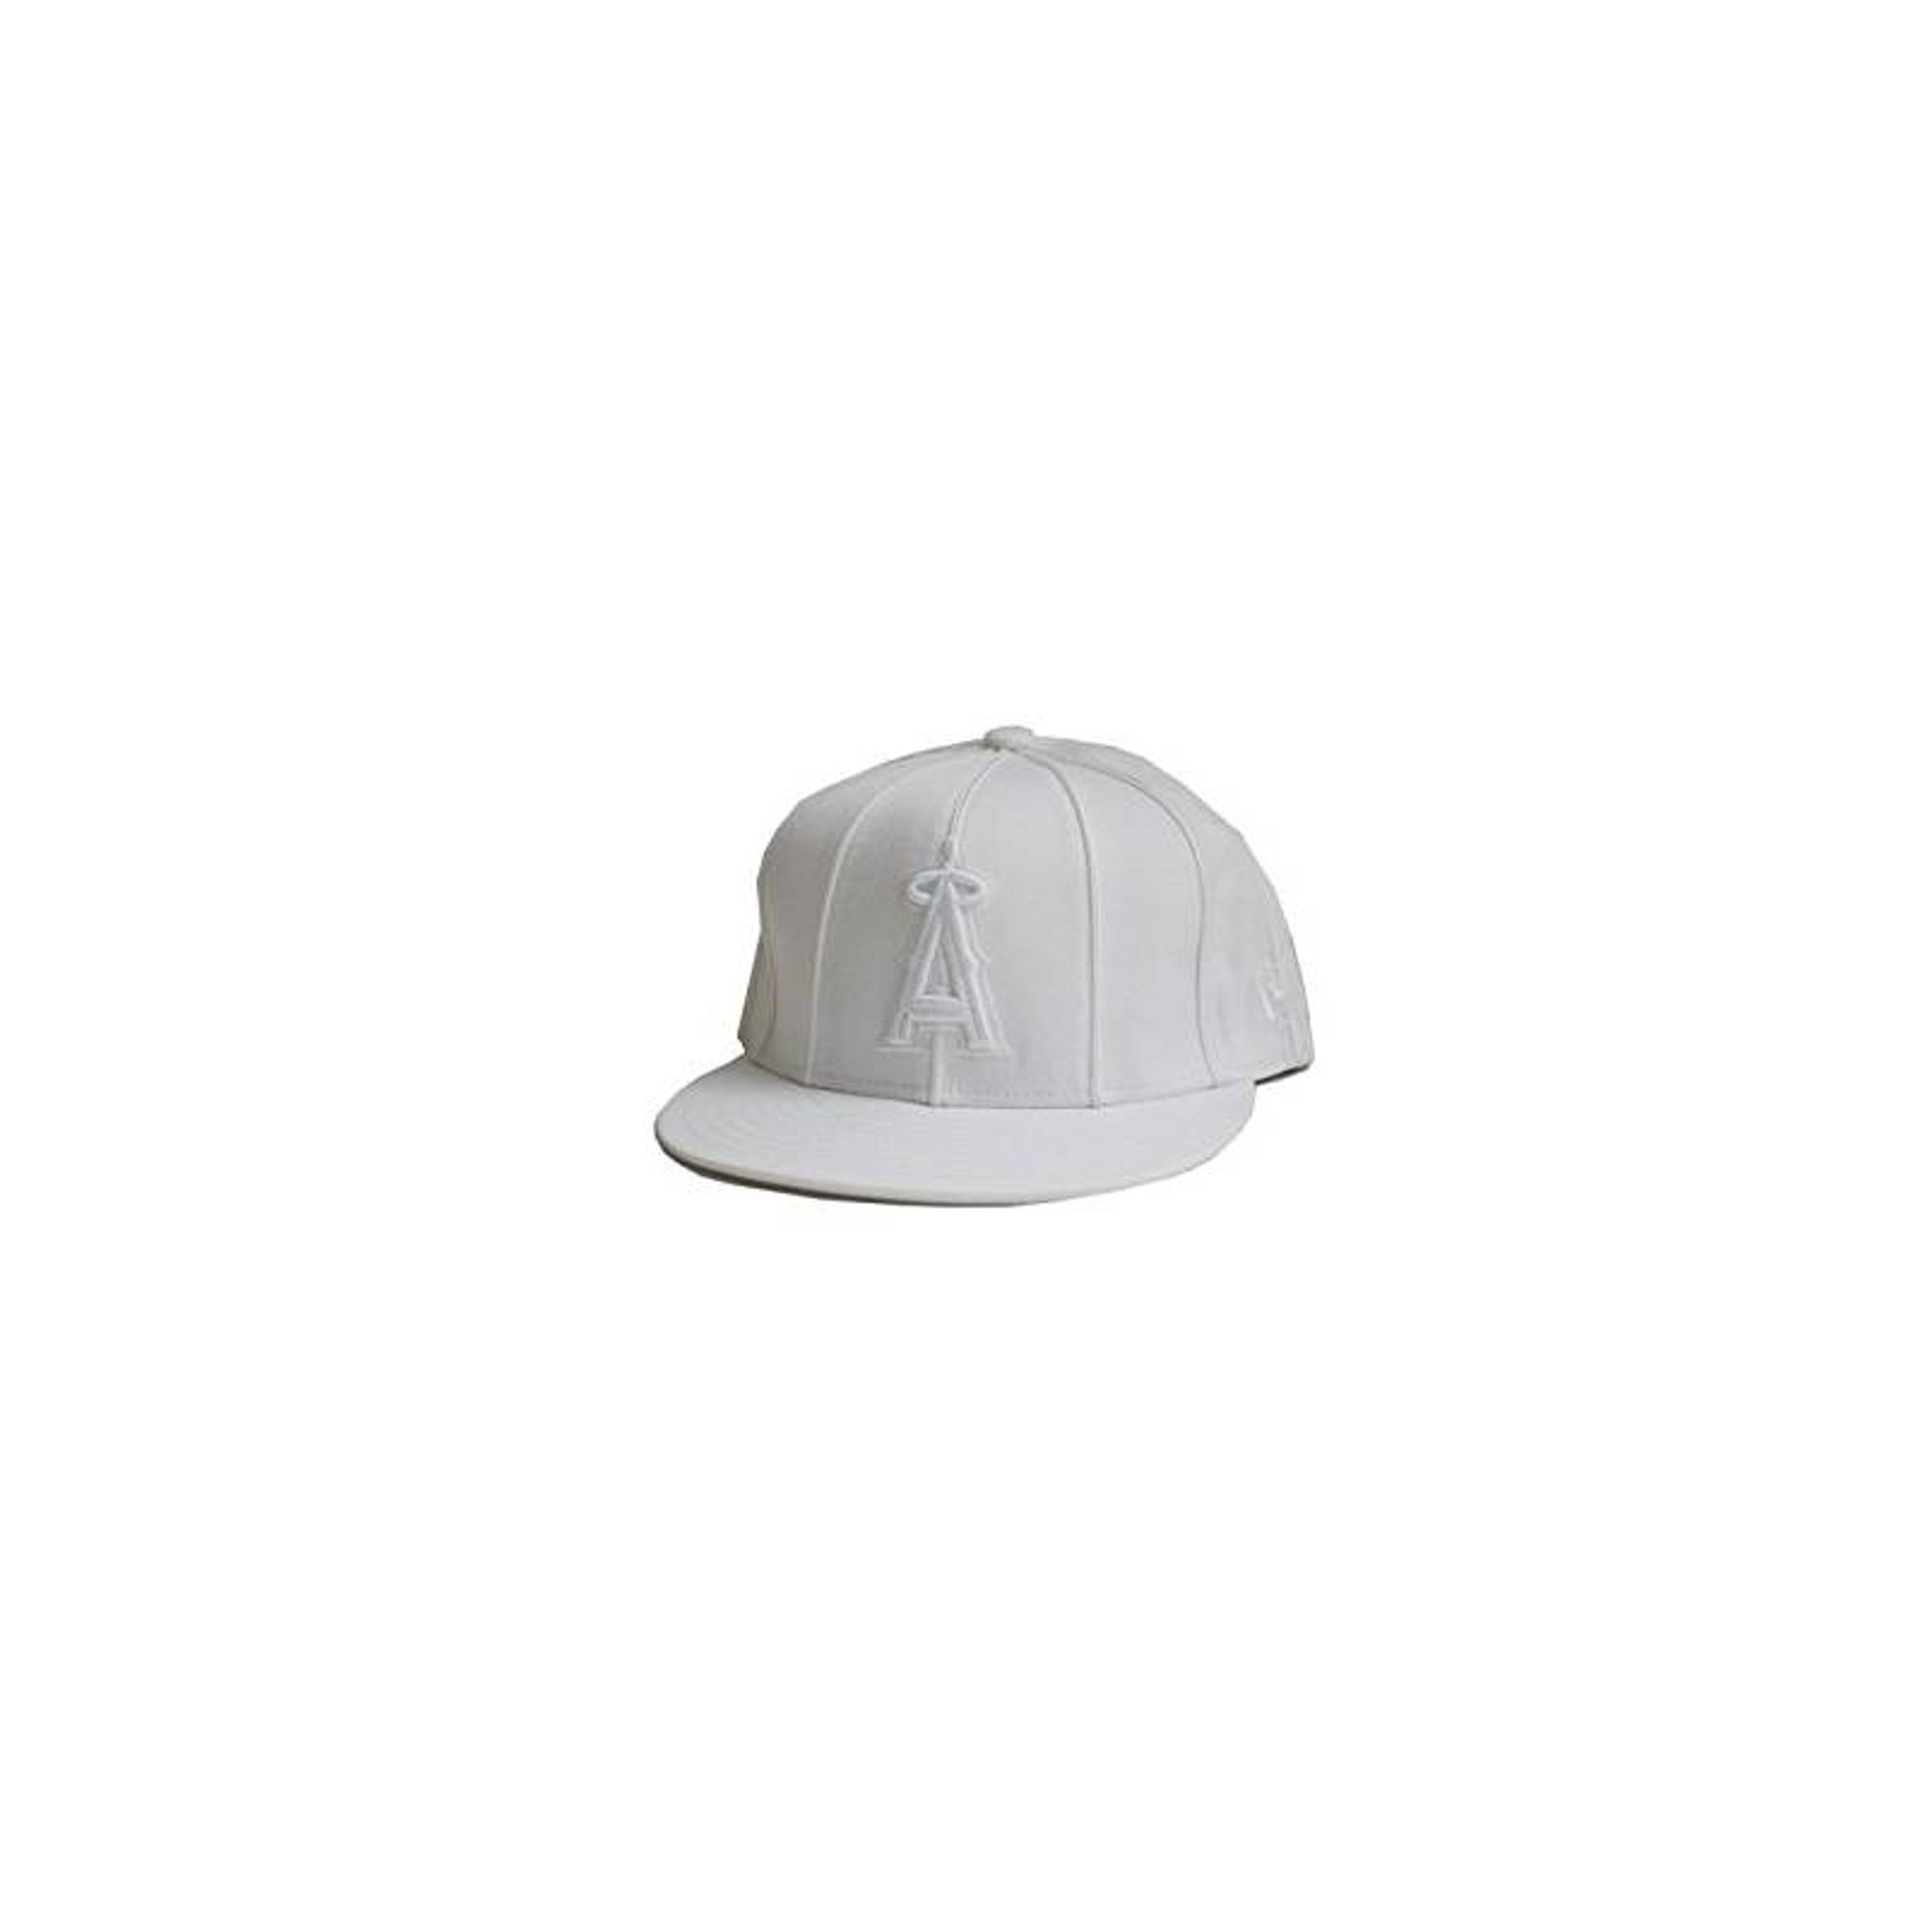 307d32d0 New Era Custom Anaheim Angels Fitted Cap - White 7 3/4 | Walmart Canada